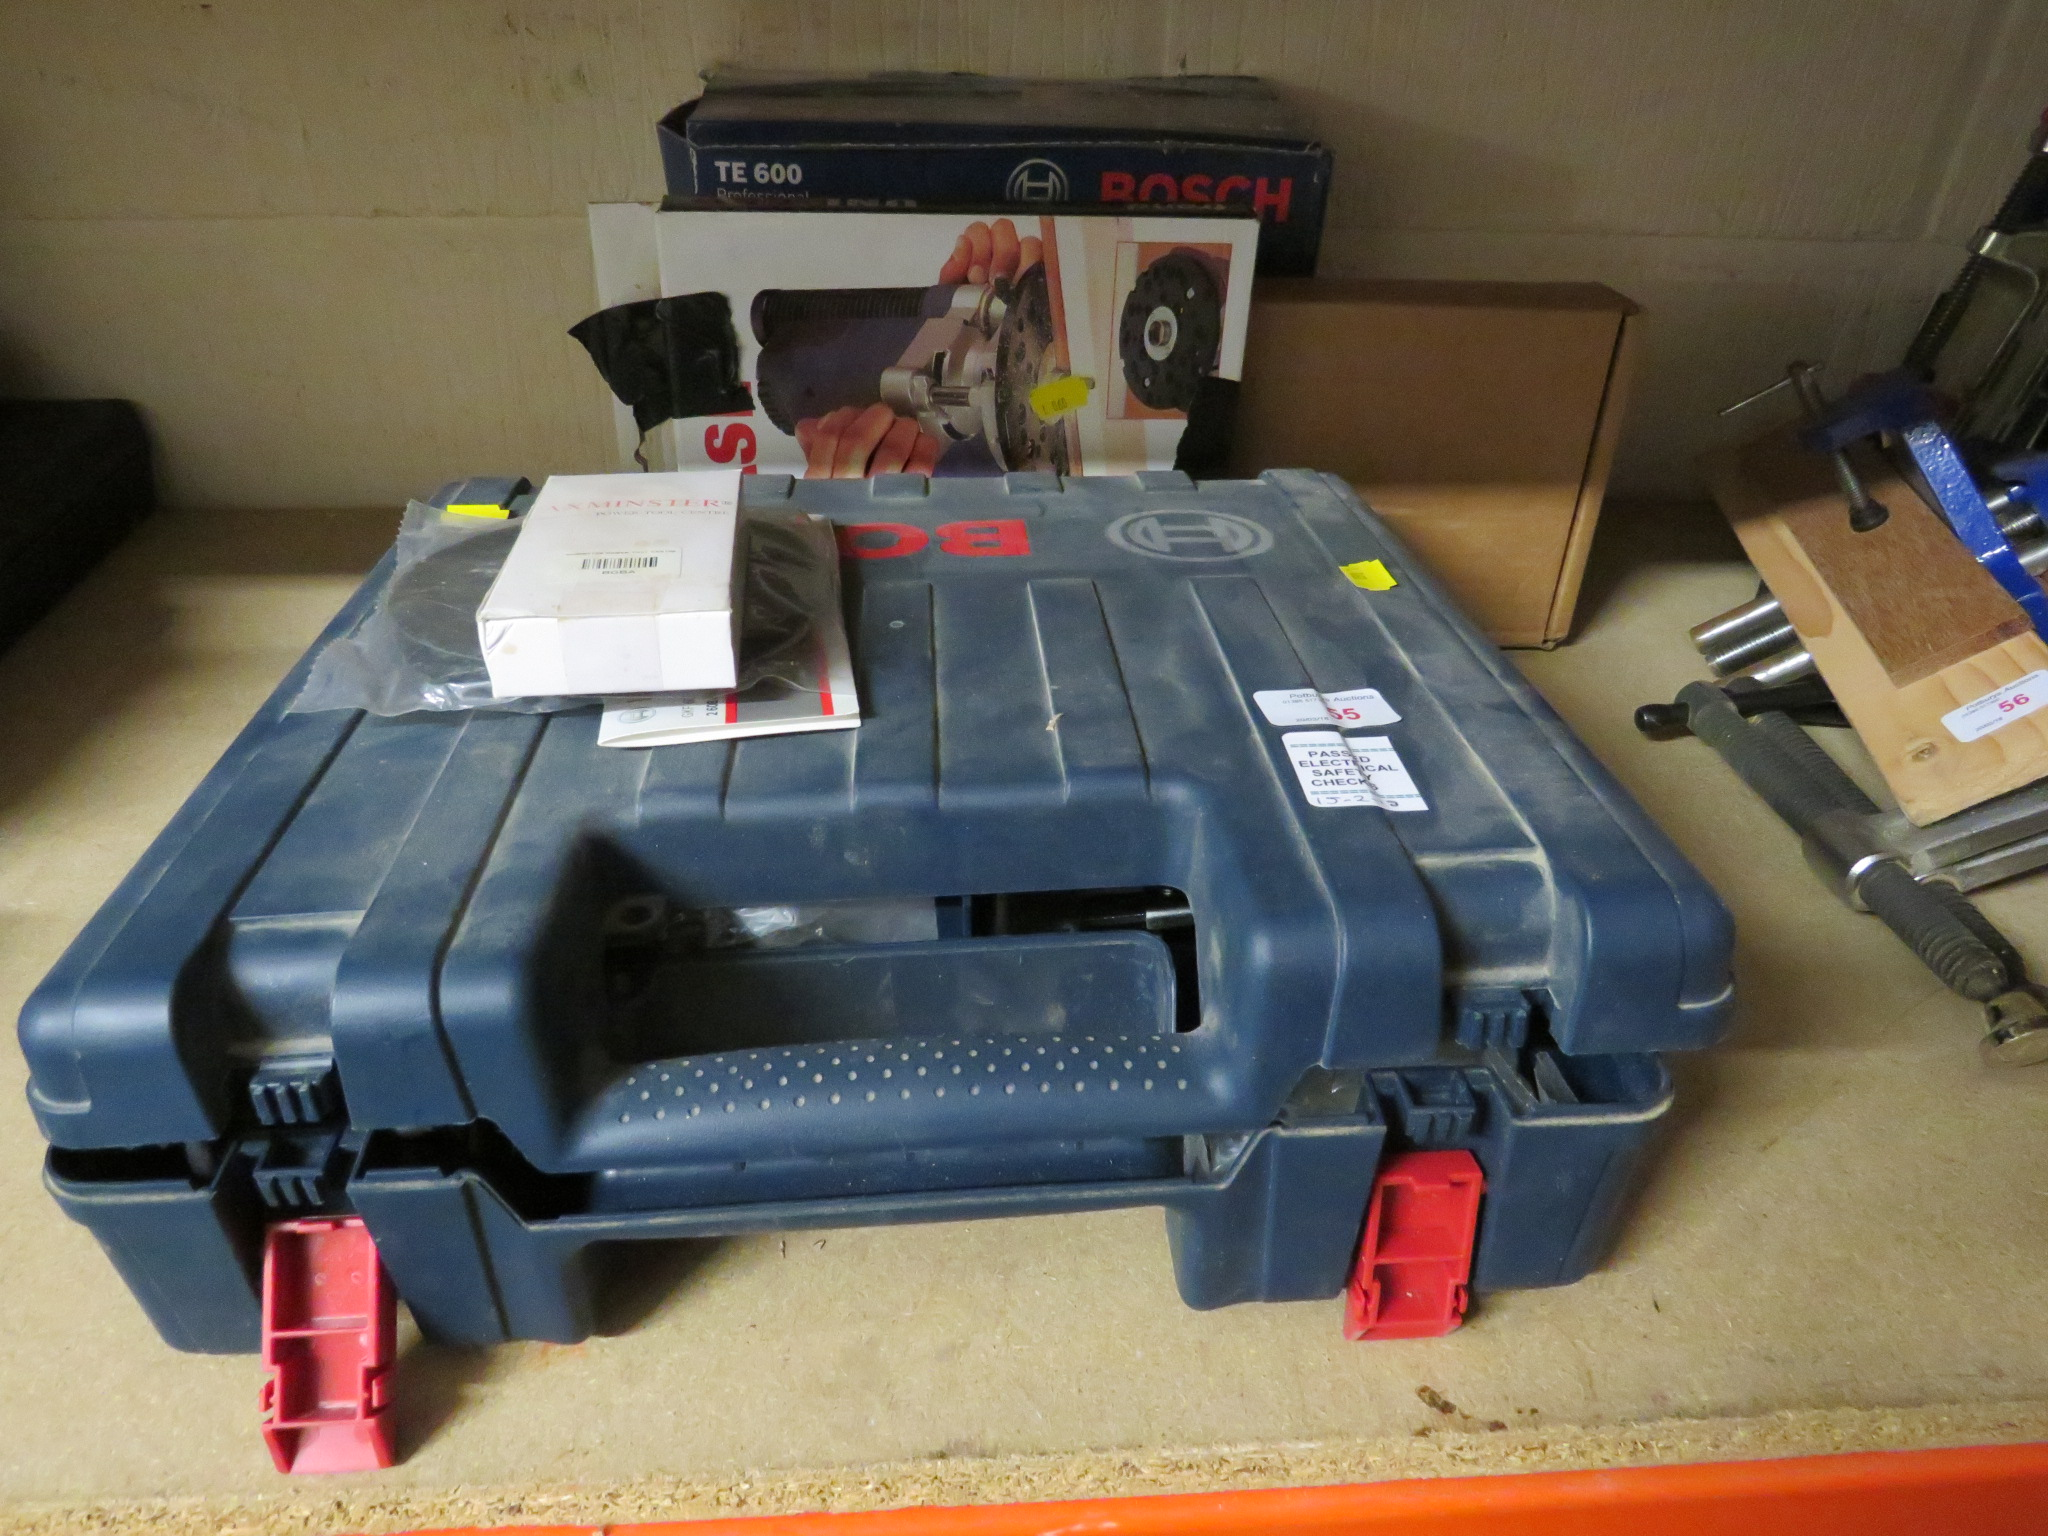 Lot 55 - CASED BOSCH GKF 600 PROFESSIONAL PALM ROUTER, BOXED BOSCH TE600 PLUNGE BASE, TREND UNIBASE, BOX OF